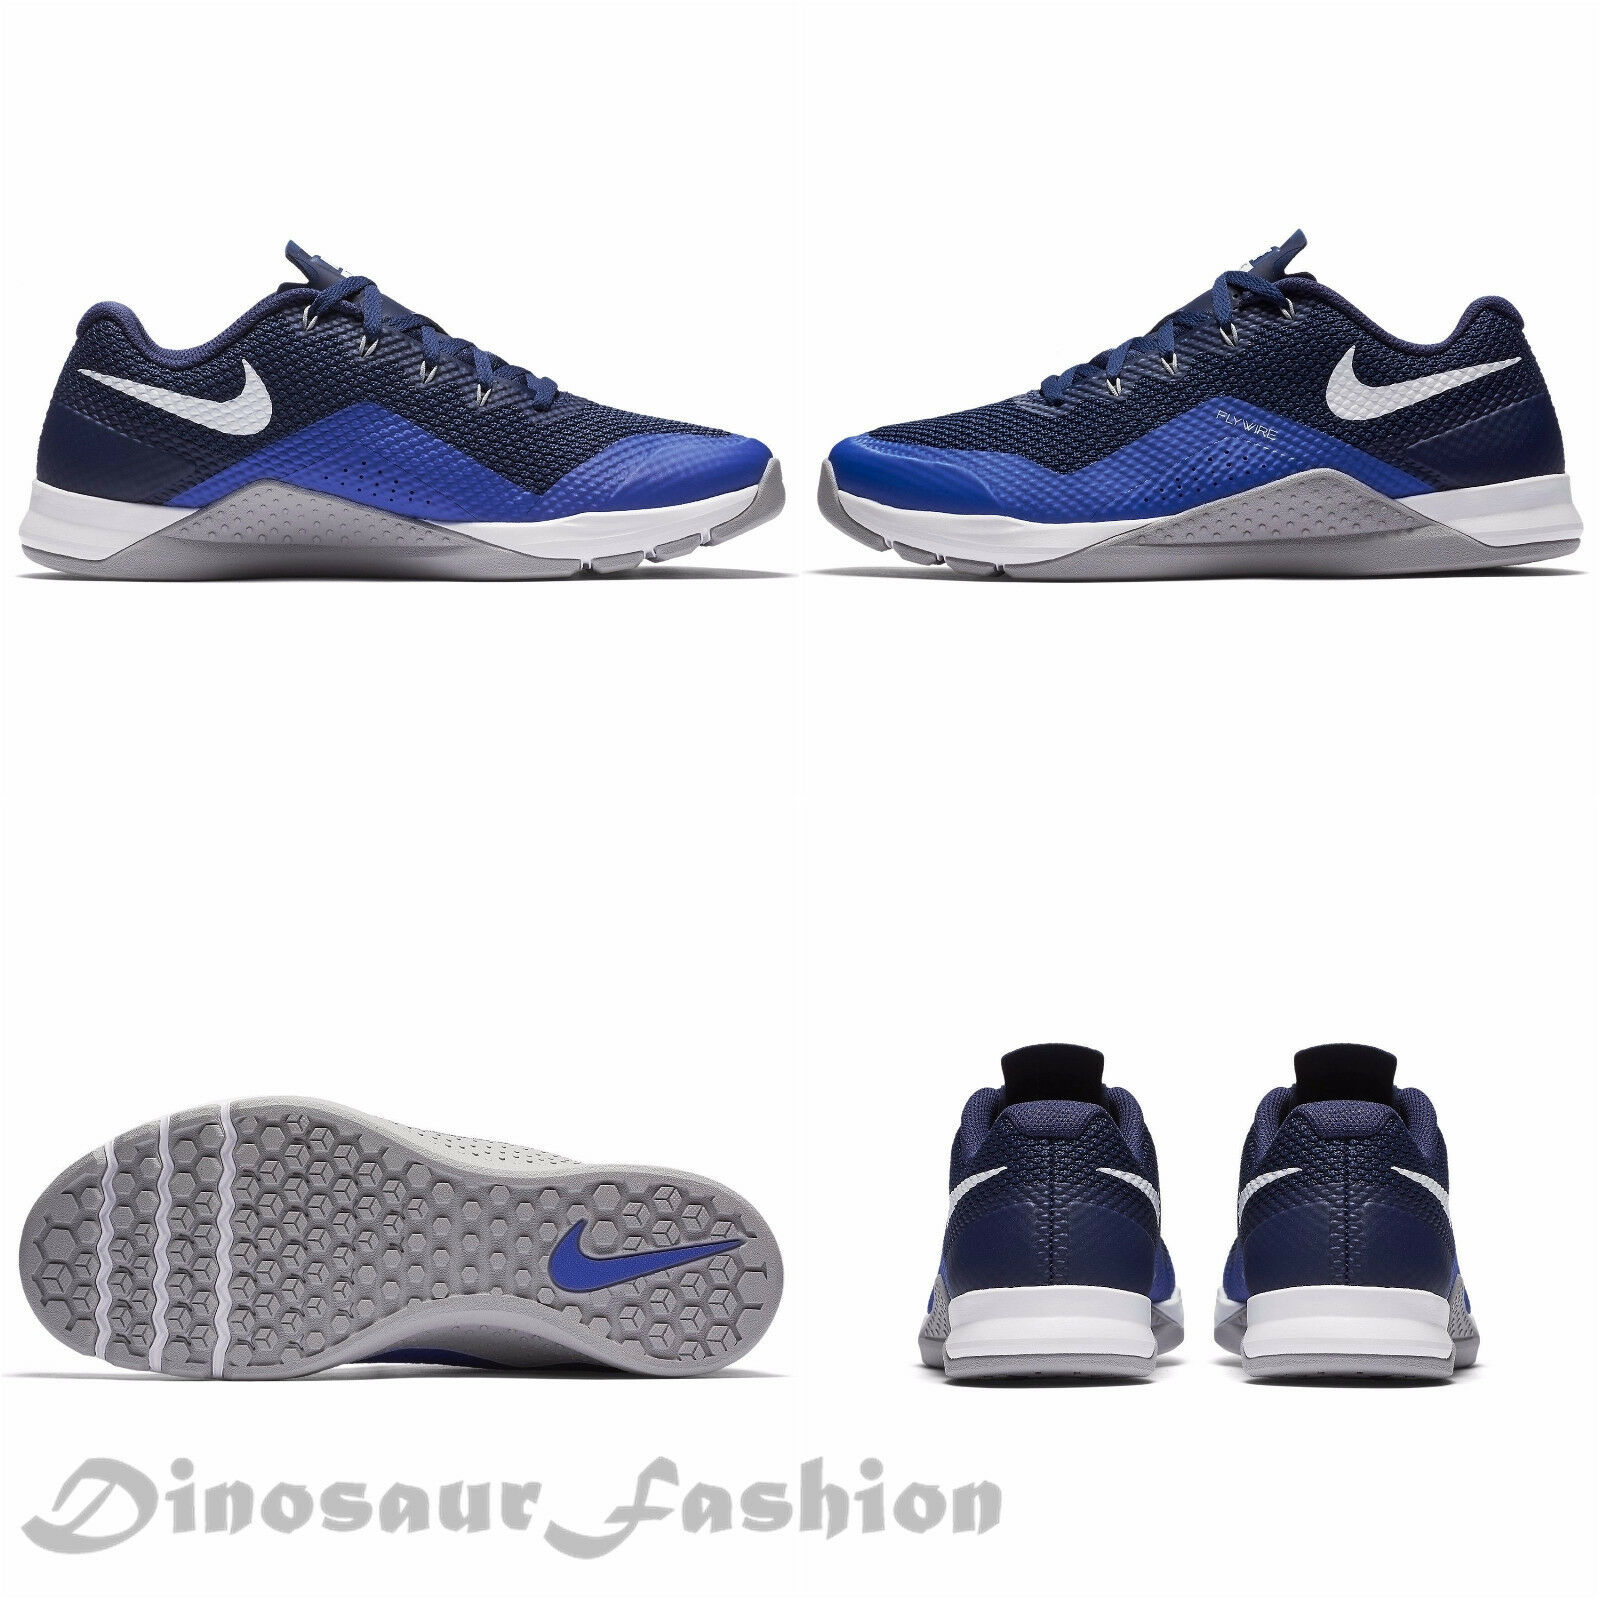 NIKE METCON REPPER DSX (898048-400), hommes Training Chaussures New with Box.